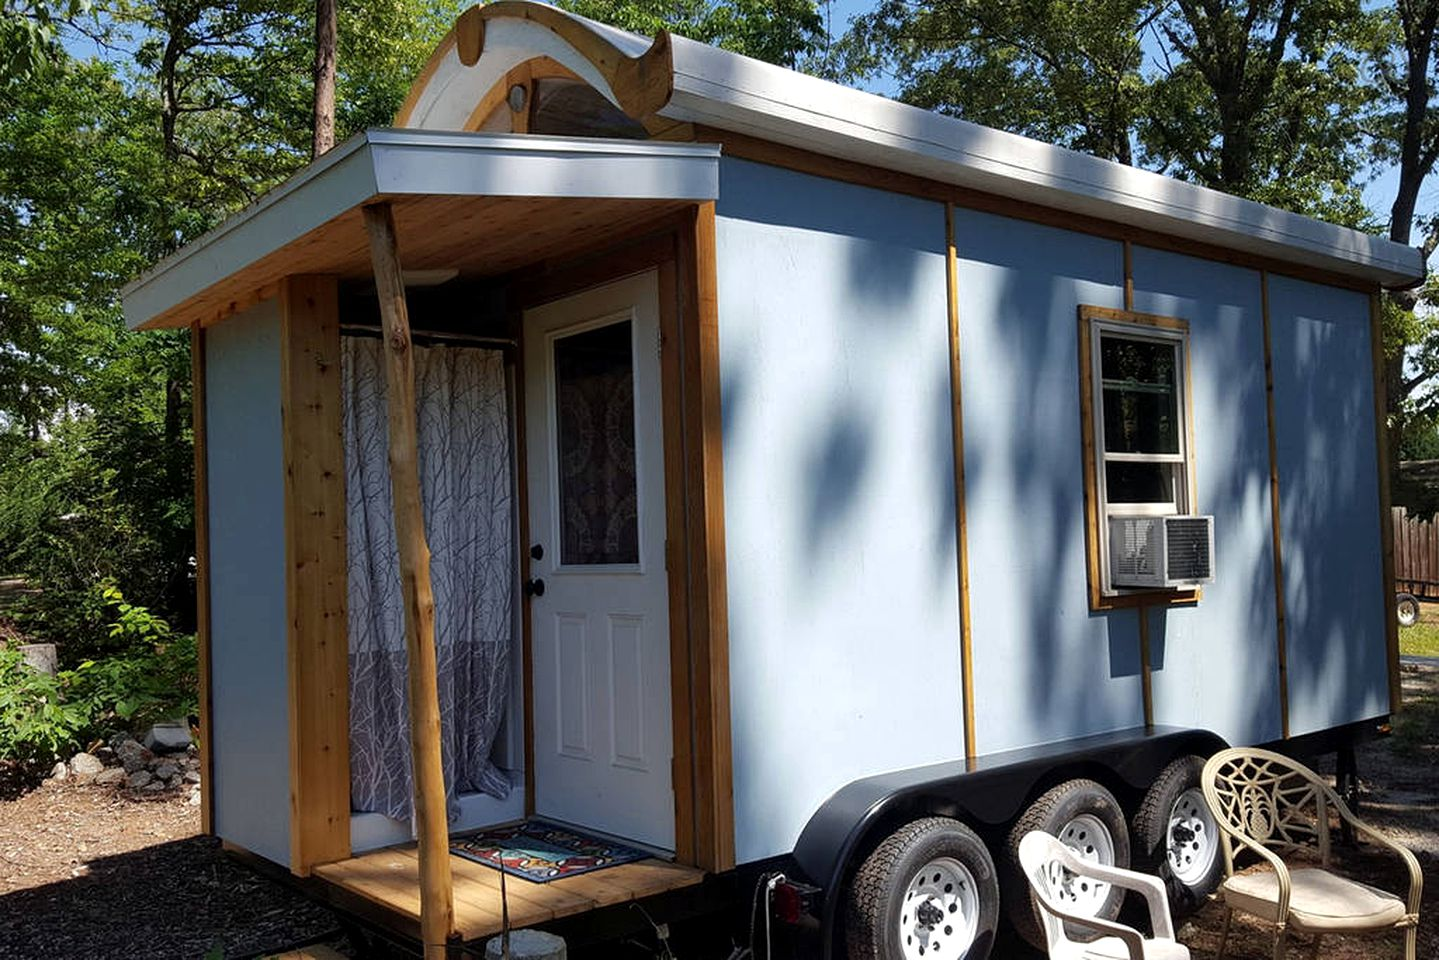 Tiny Houses (Seneca, South Carolina, United States)